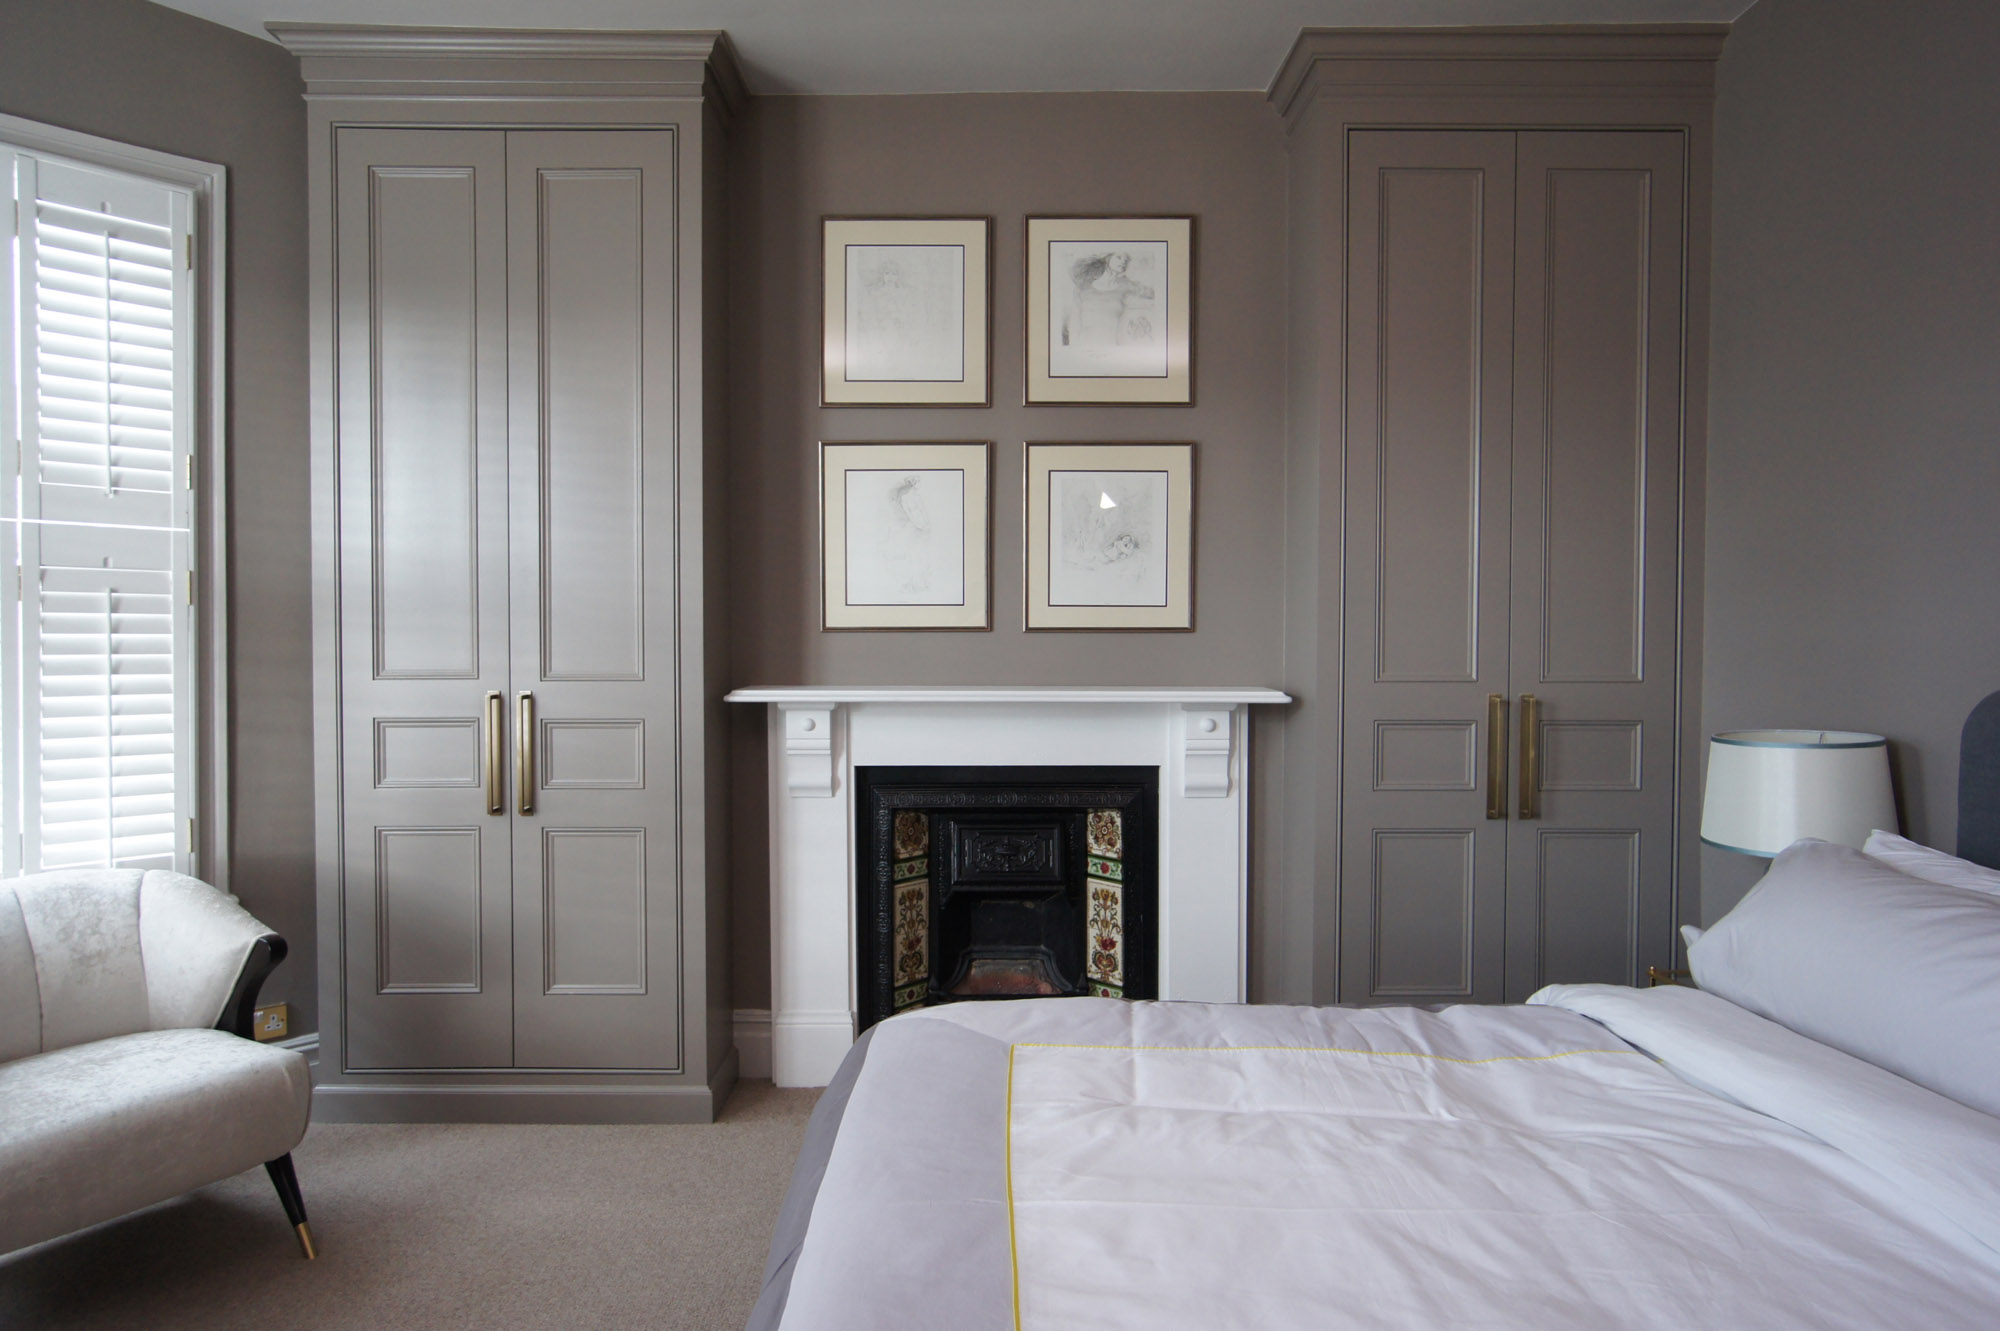 GW-Cabinetry-Interior-Solutions-Wardrobes-2.jpg